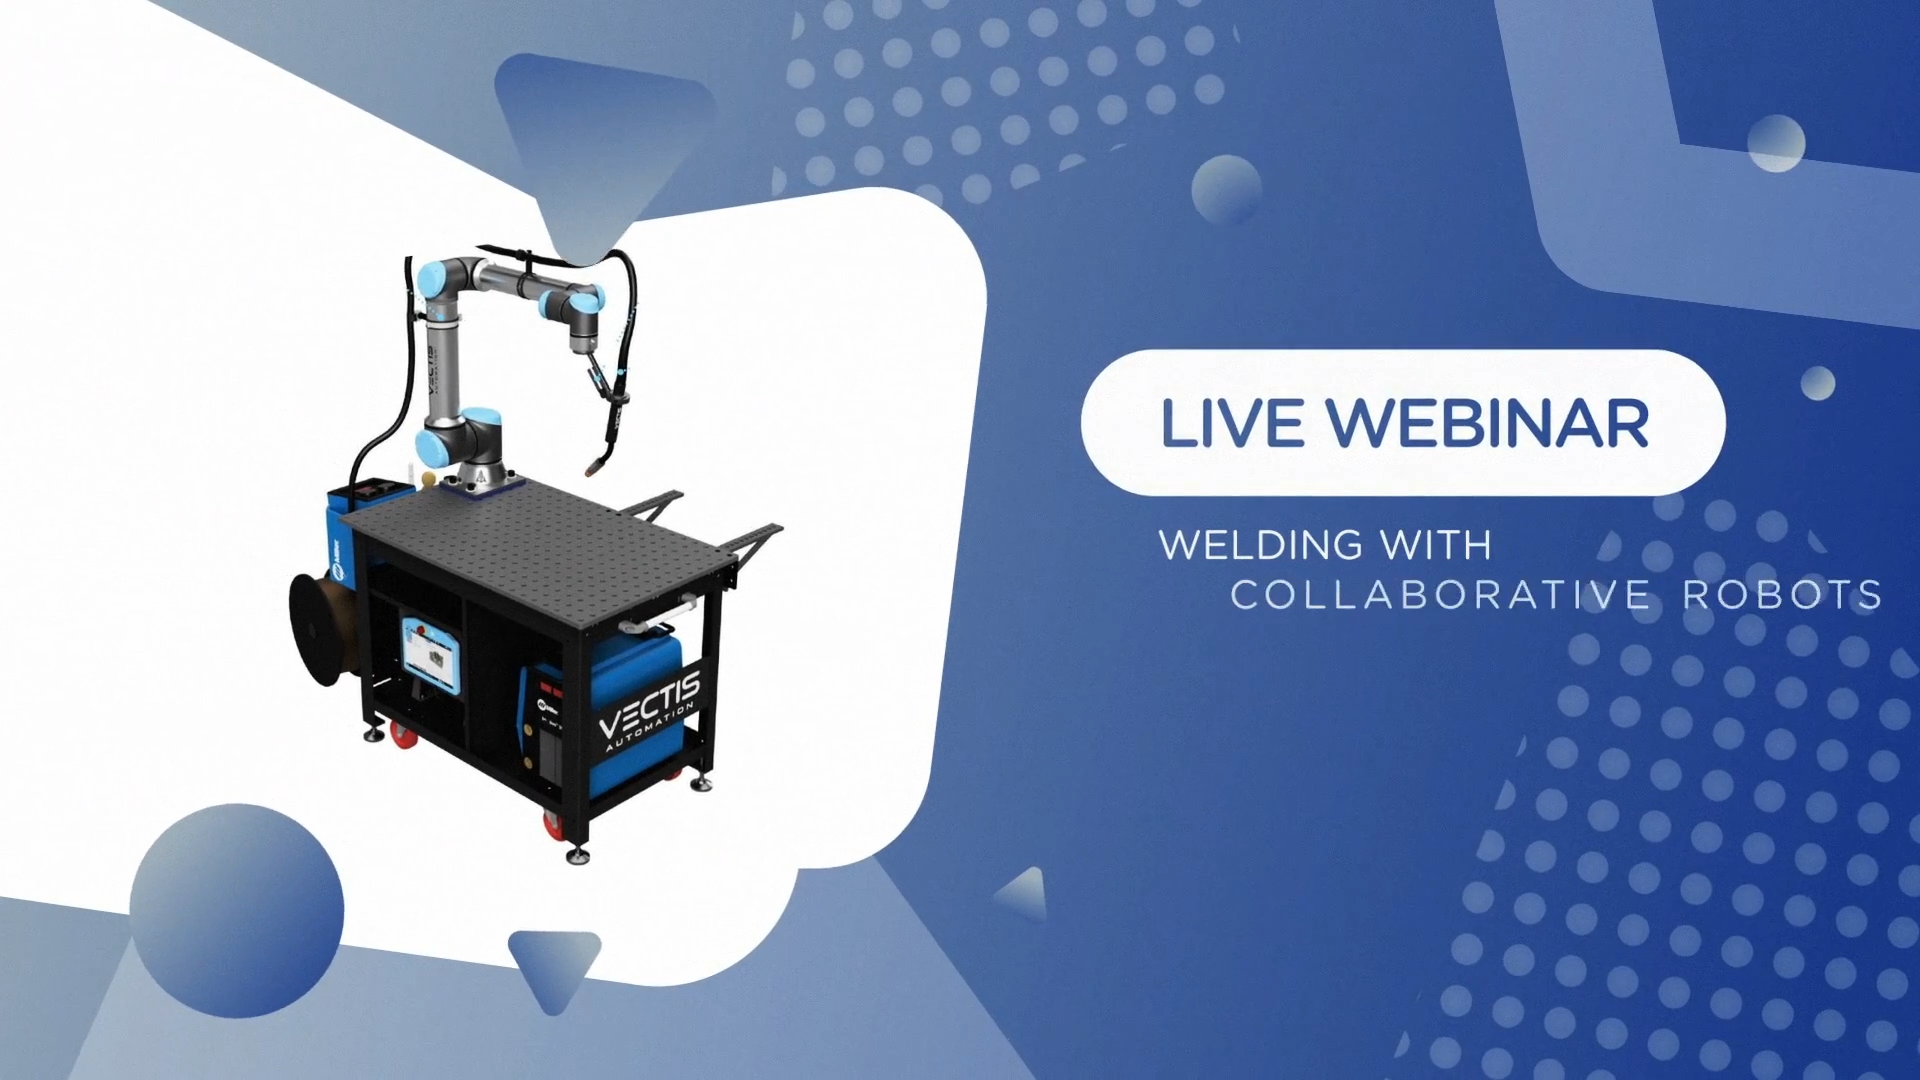 FPE and Vectis Present Welding with Collaborative Robots